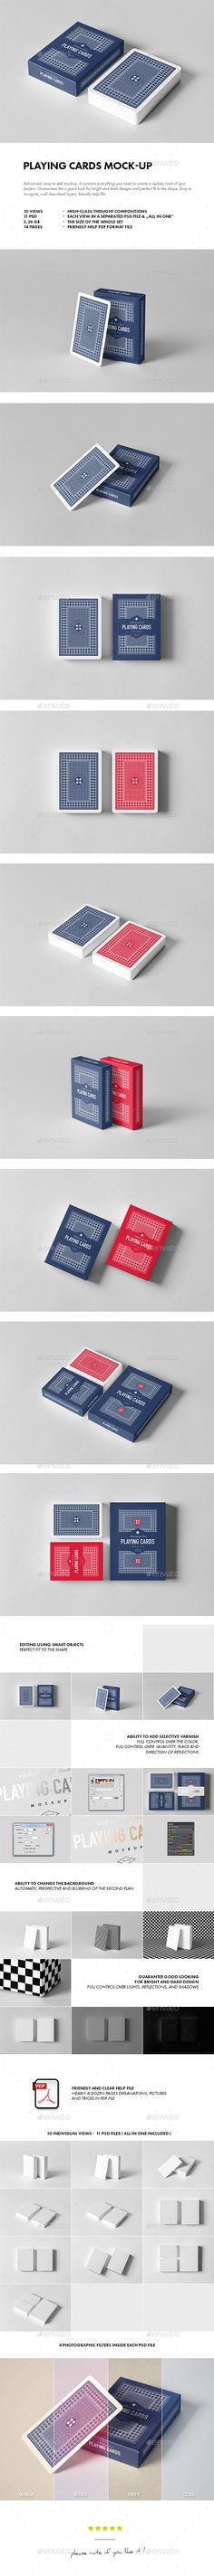 Playing Card Mockup — Photoshop PSD #mockup #carton • Download ➝ https://graphicriver.net/item/playing-card-mockup/19792590?ref=pxcr